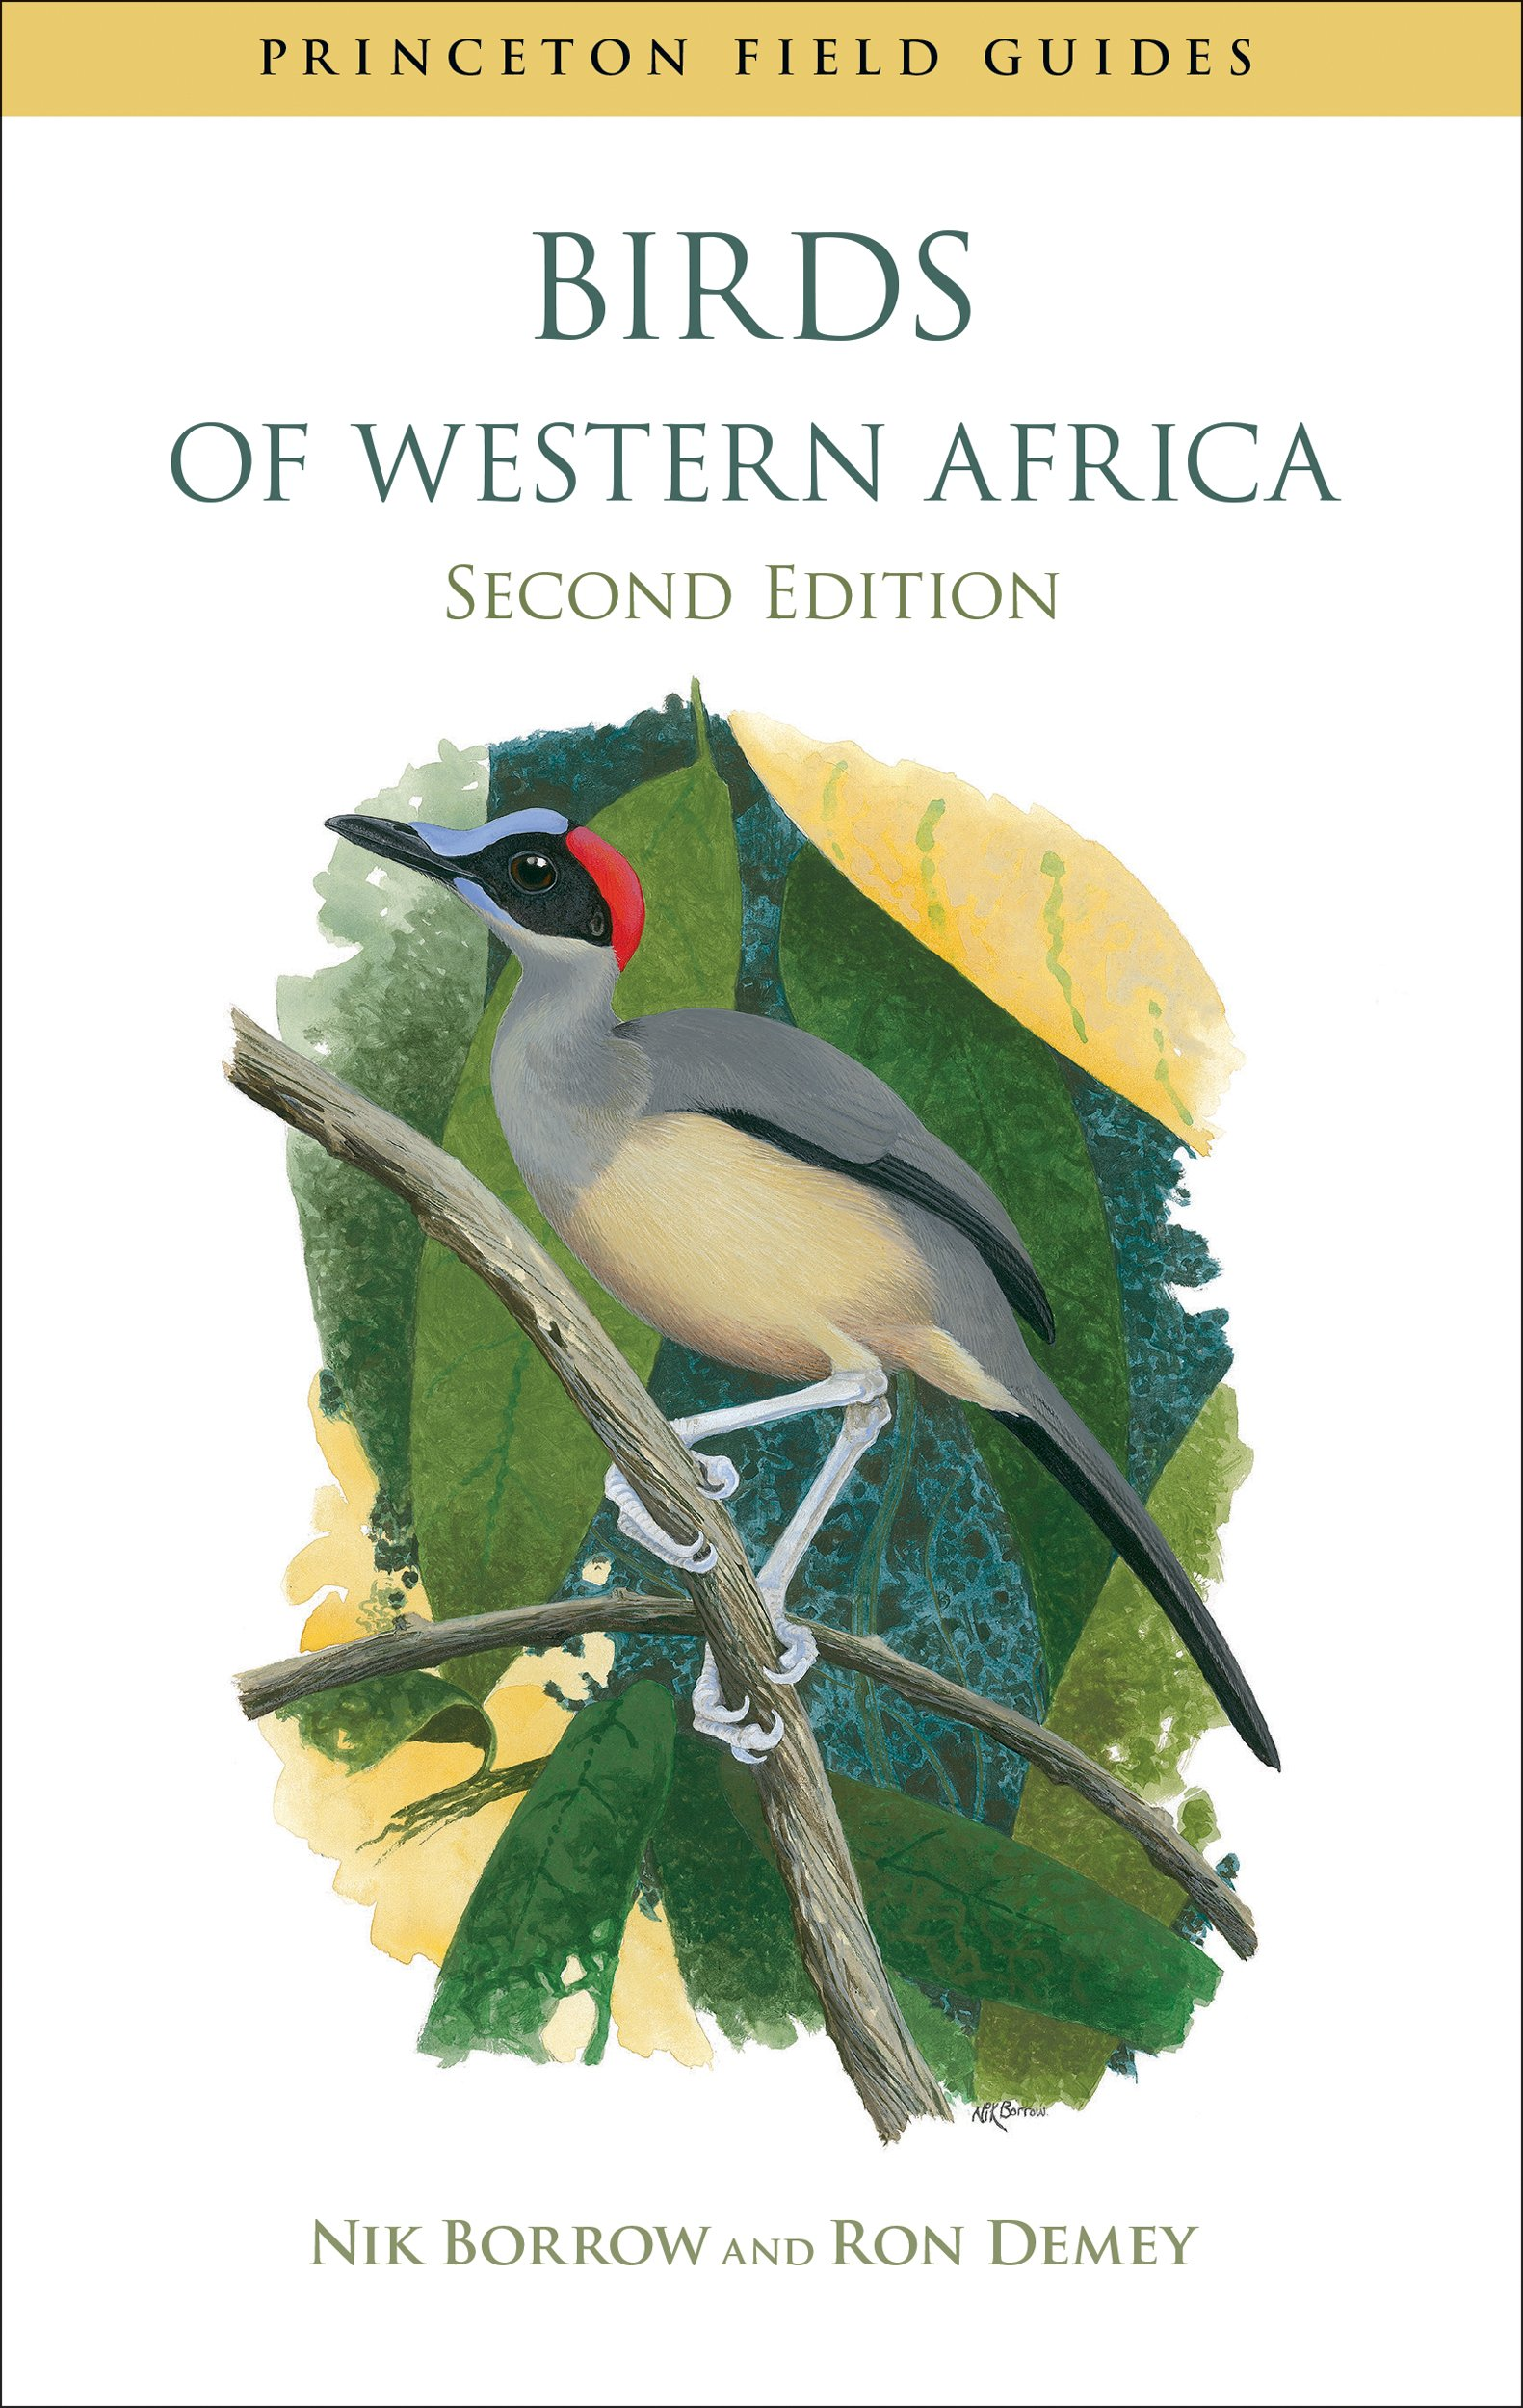 Birds of Western Africa: Second Edition (Princeton Field Guides)